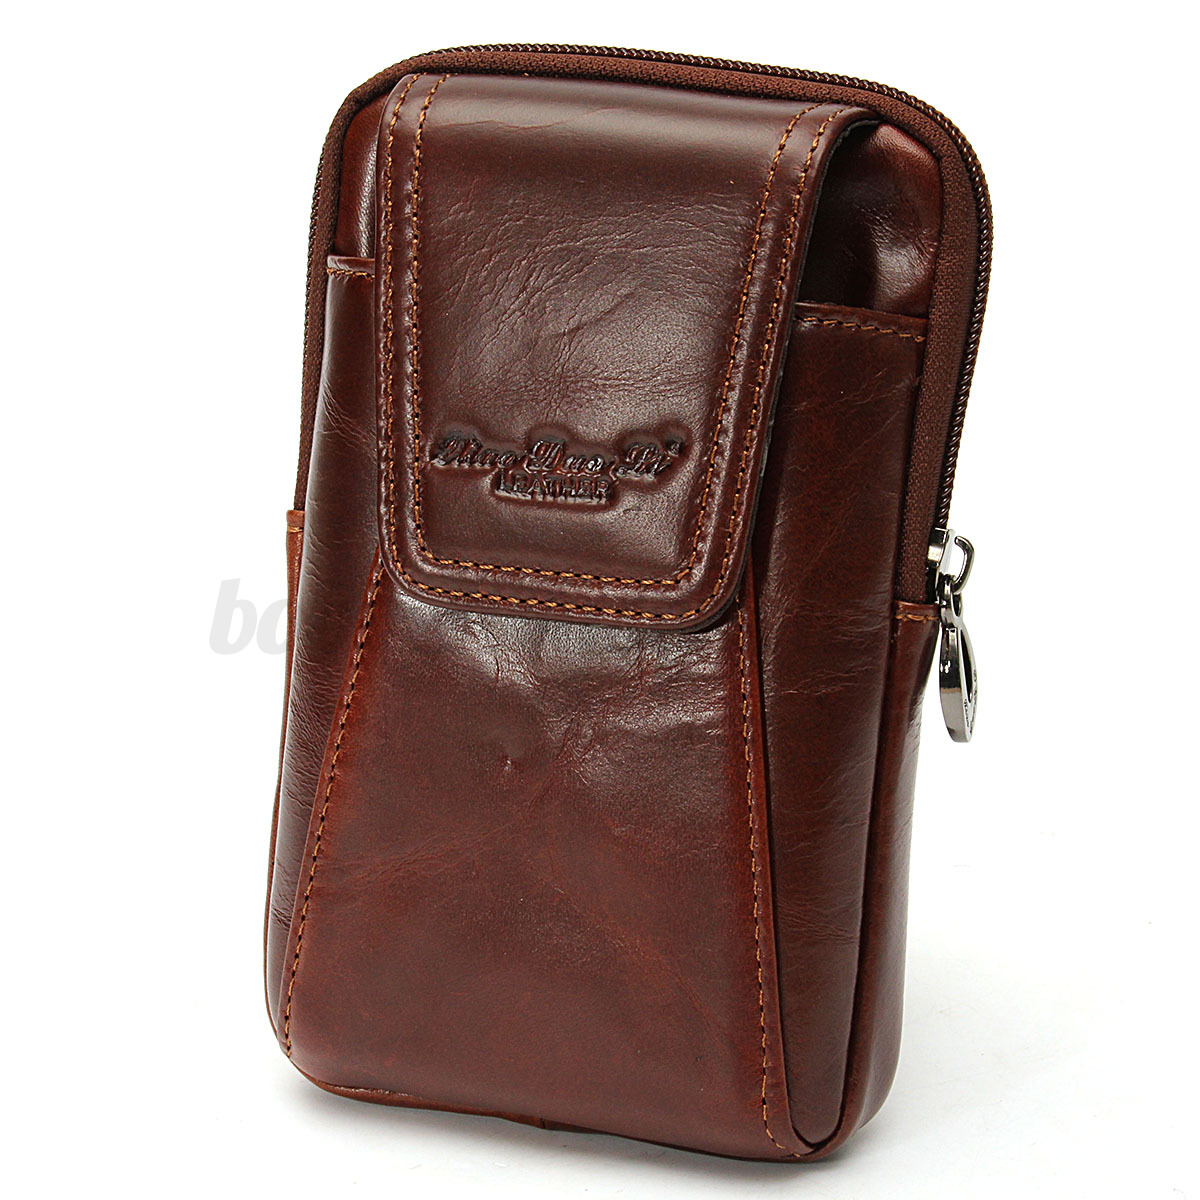 Case Design cell phone case for belt : ... -Waist-Bag-Leather-Cell-Phone-Case-Cover-Pouch-Belt-Purse-Fanny-Pack